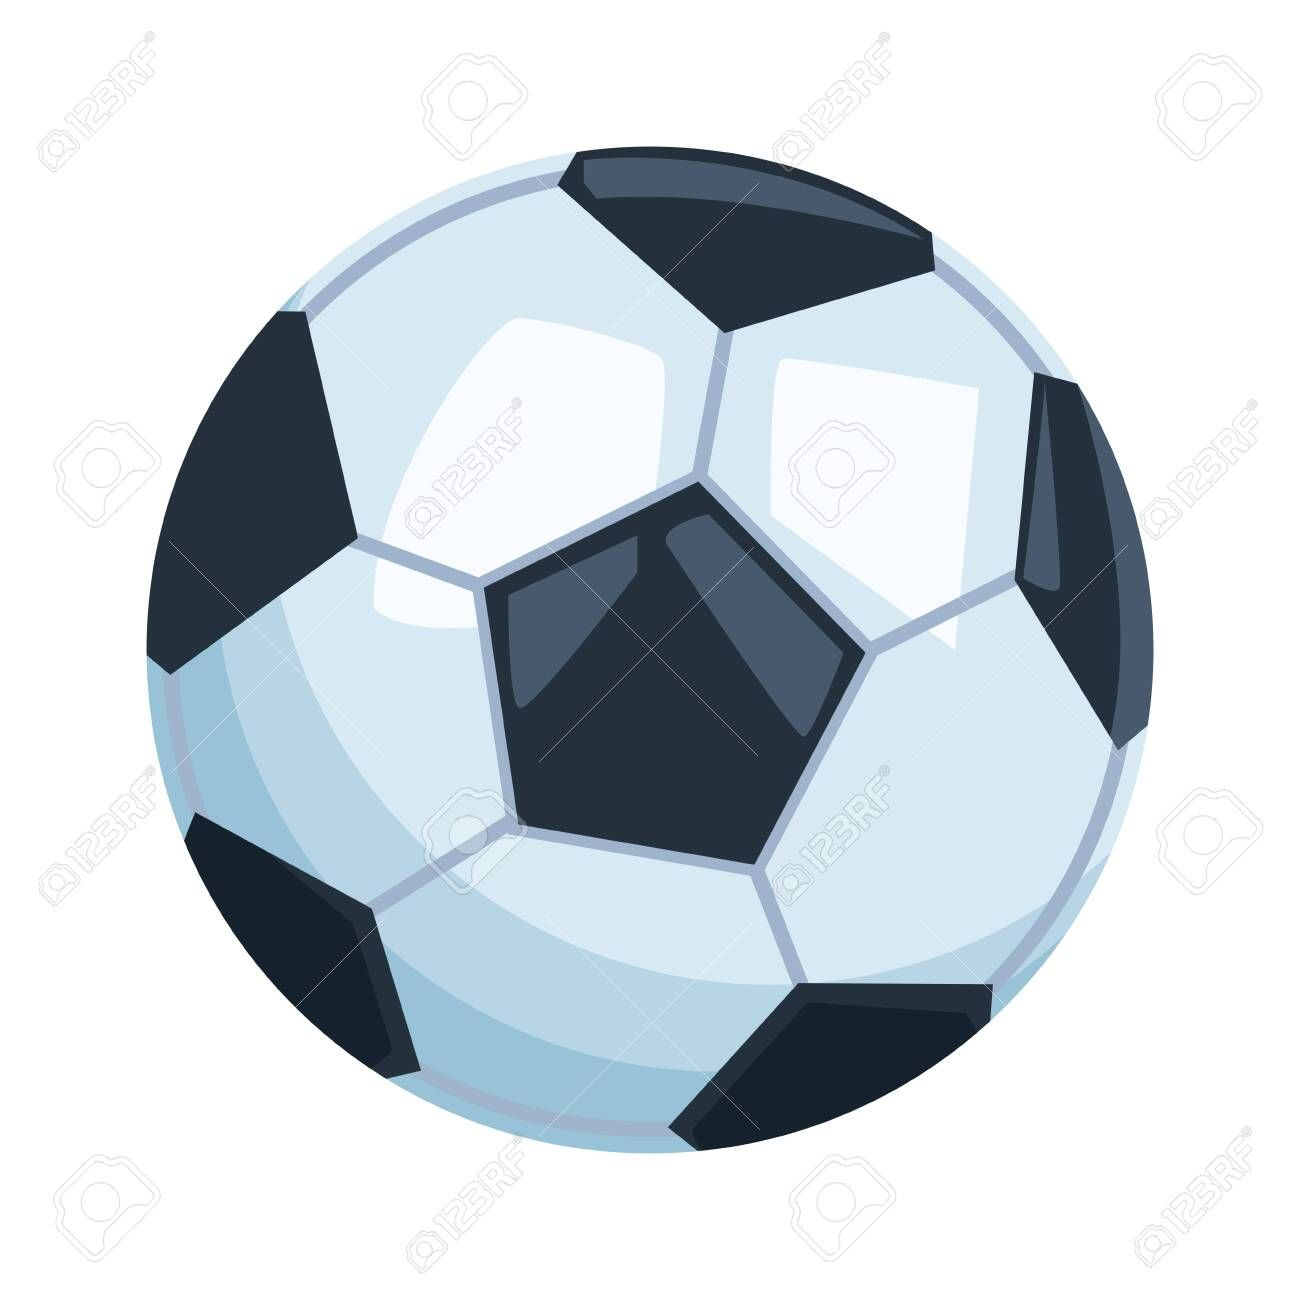 Soccer Balloon Icon Cartoon Isolated Vector Illustration Graphic Design Illustration Spons Graphic Design Illustration Illustration Design Typography Design